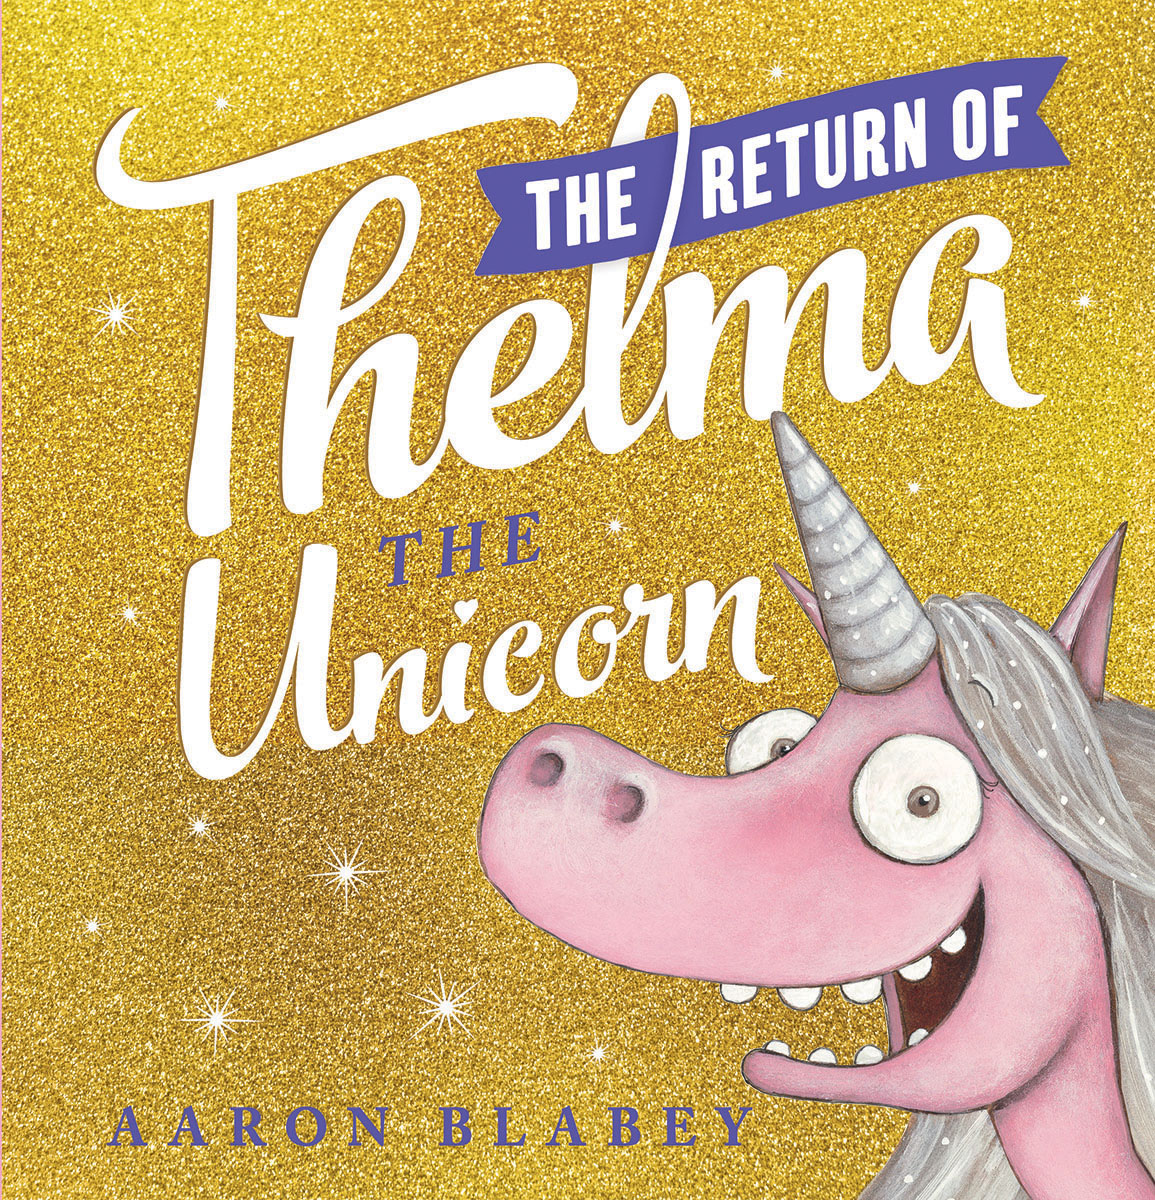 The Return of Thelma the Unicorn  | Picture books